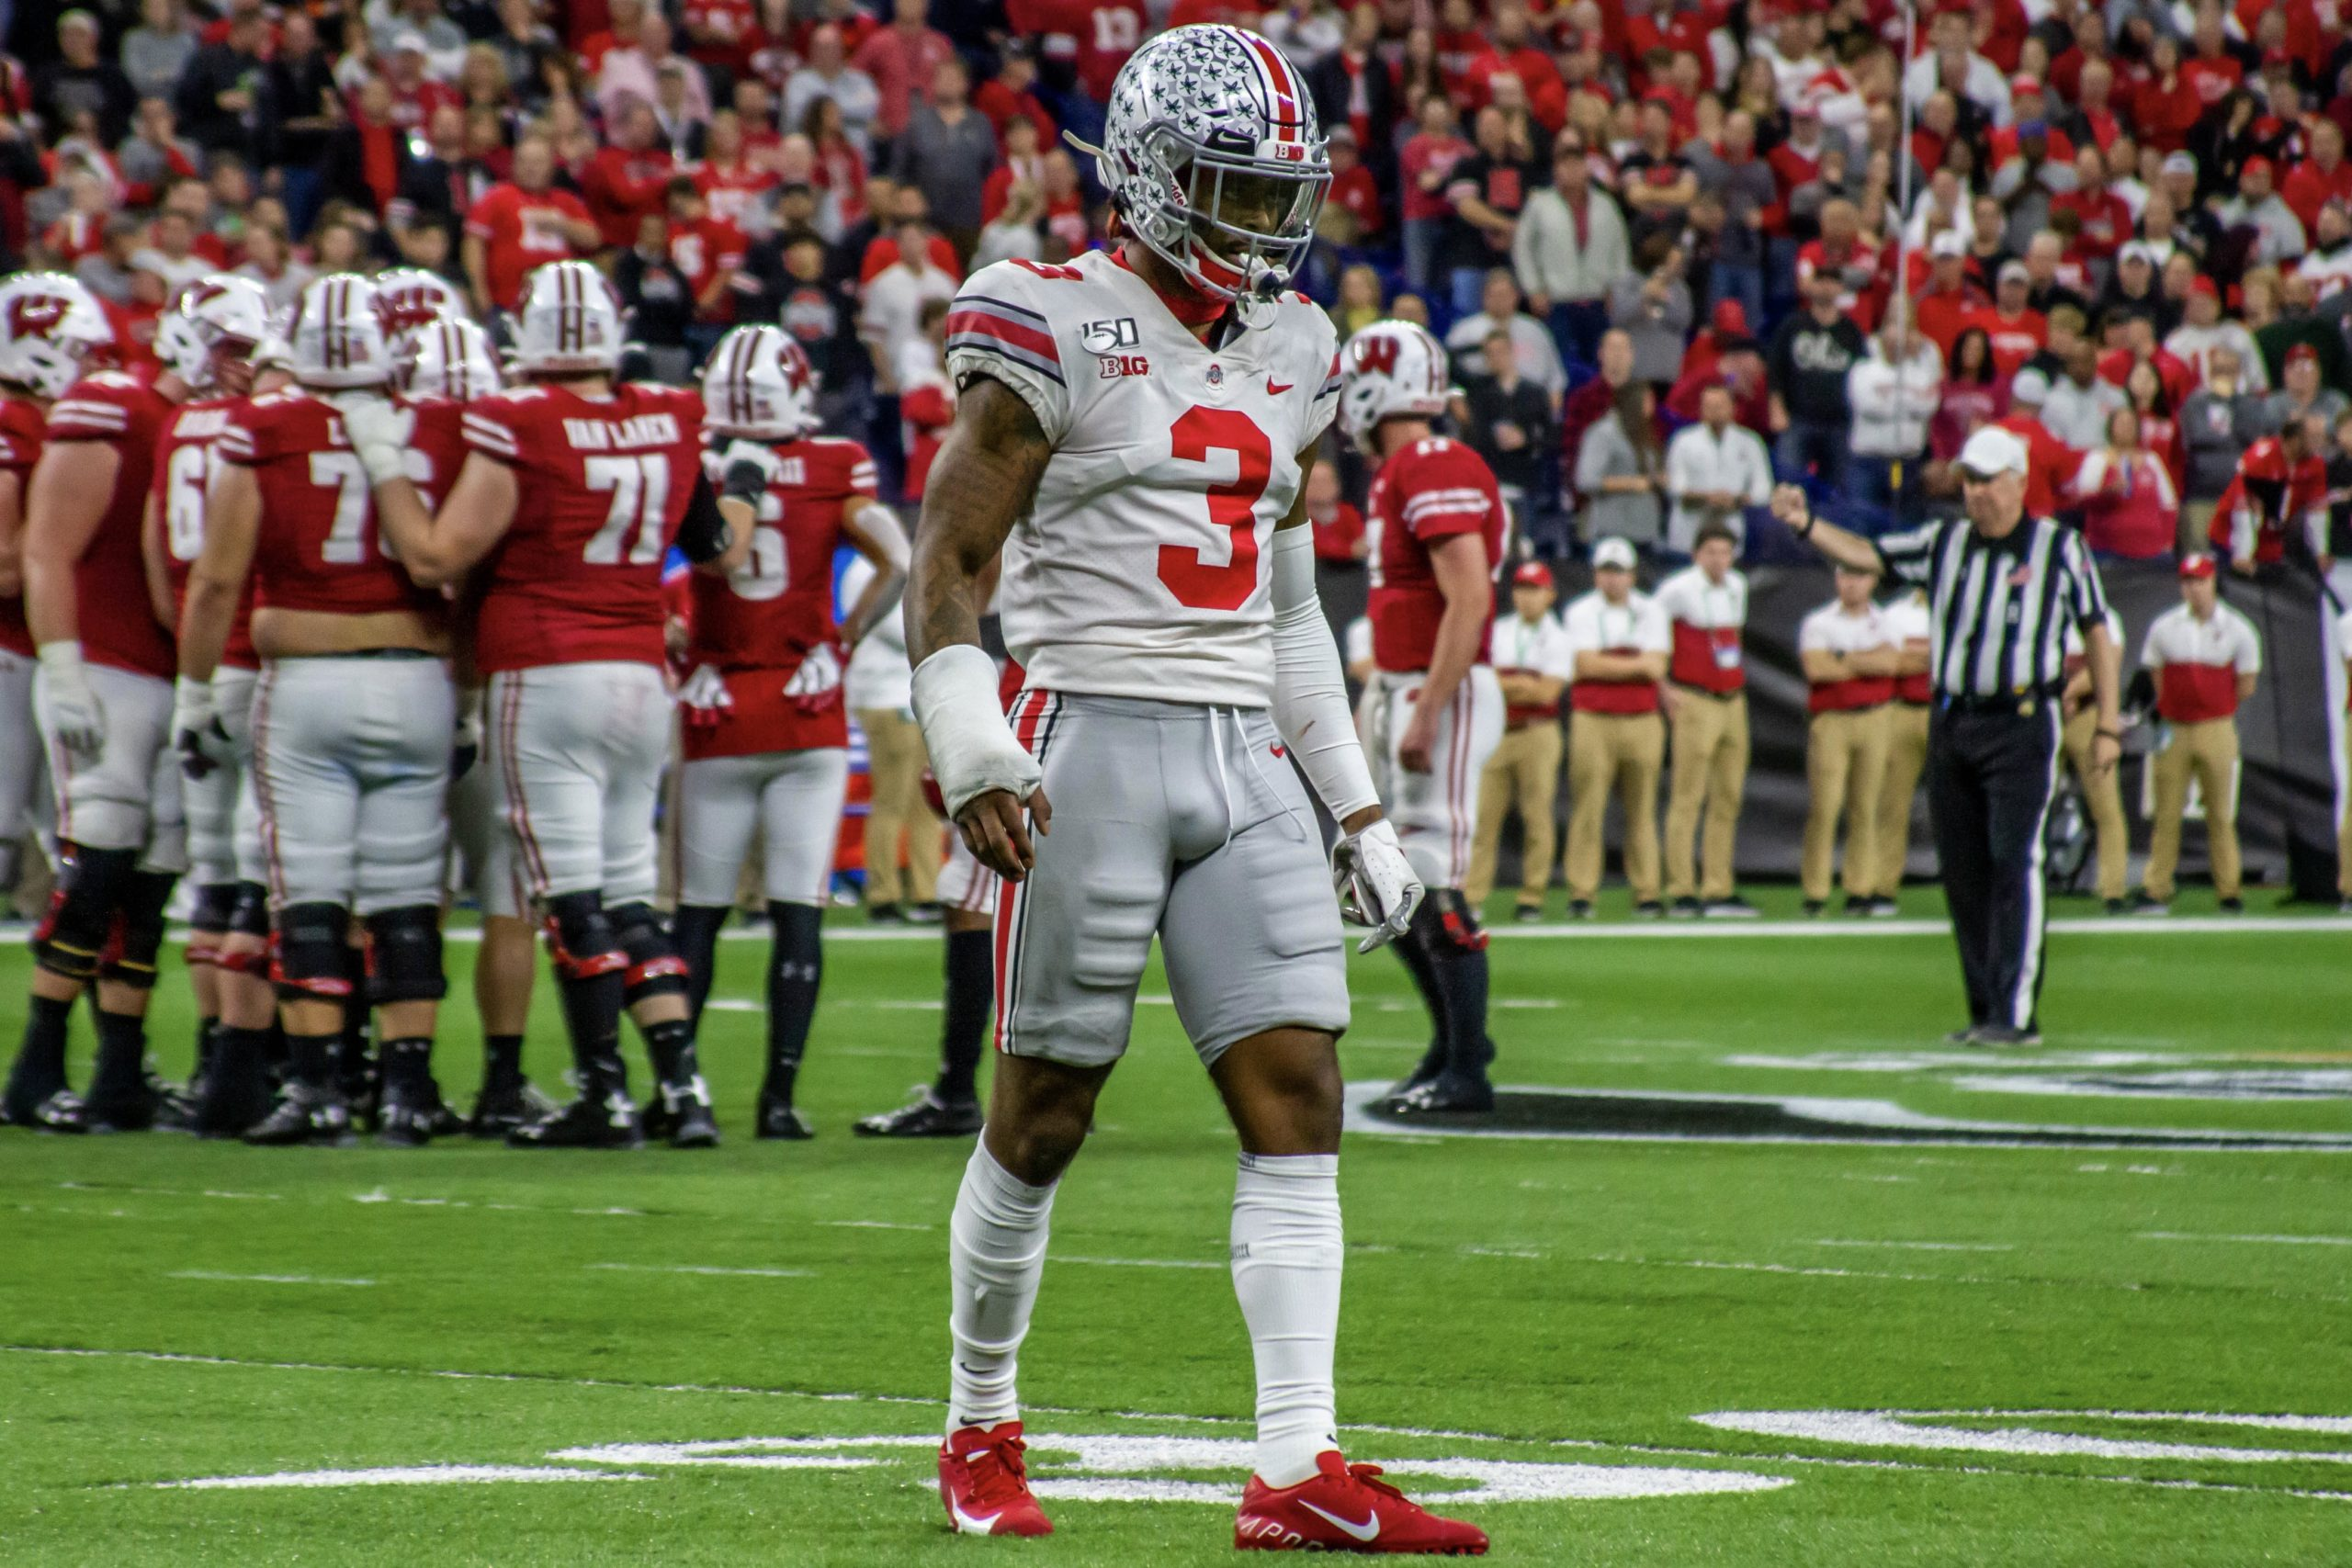 NFL Mock Draft Roundup Draft Day Edition: Damon Arnette Projecting As Third Ohio State Player Off The Board